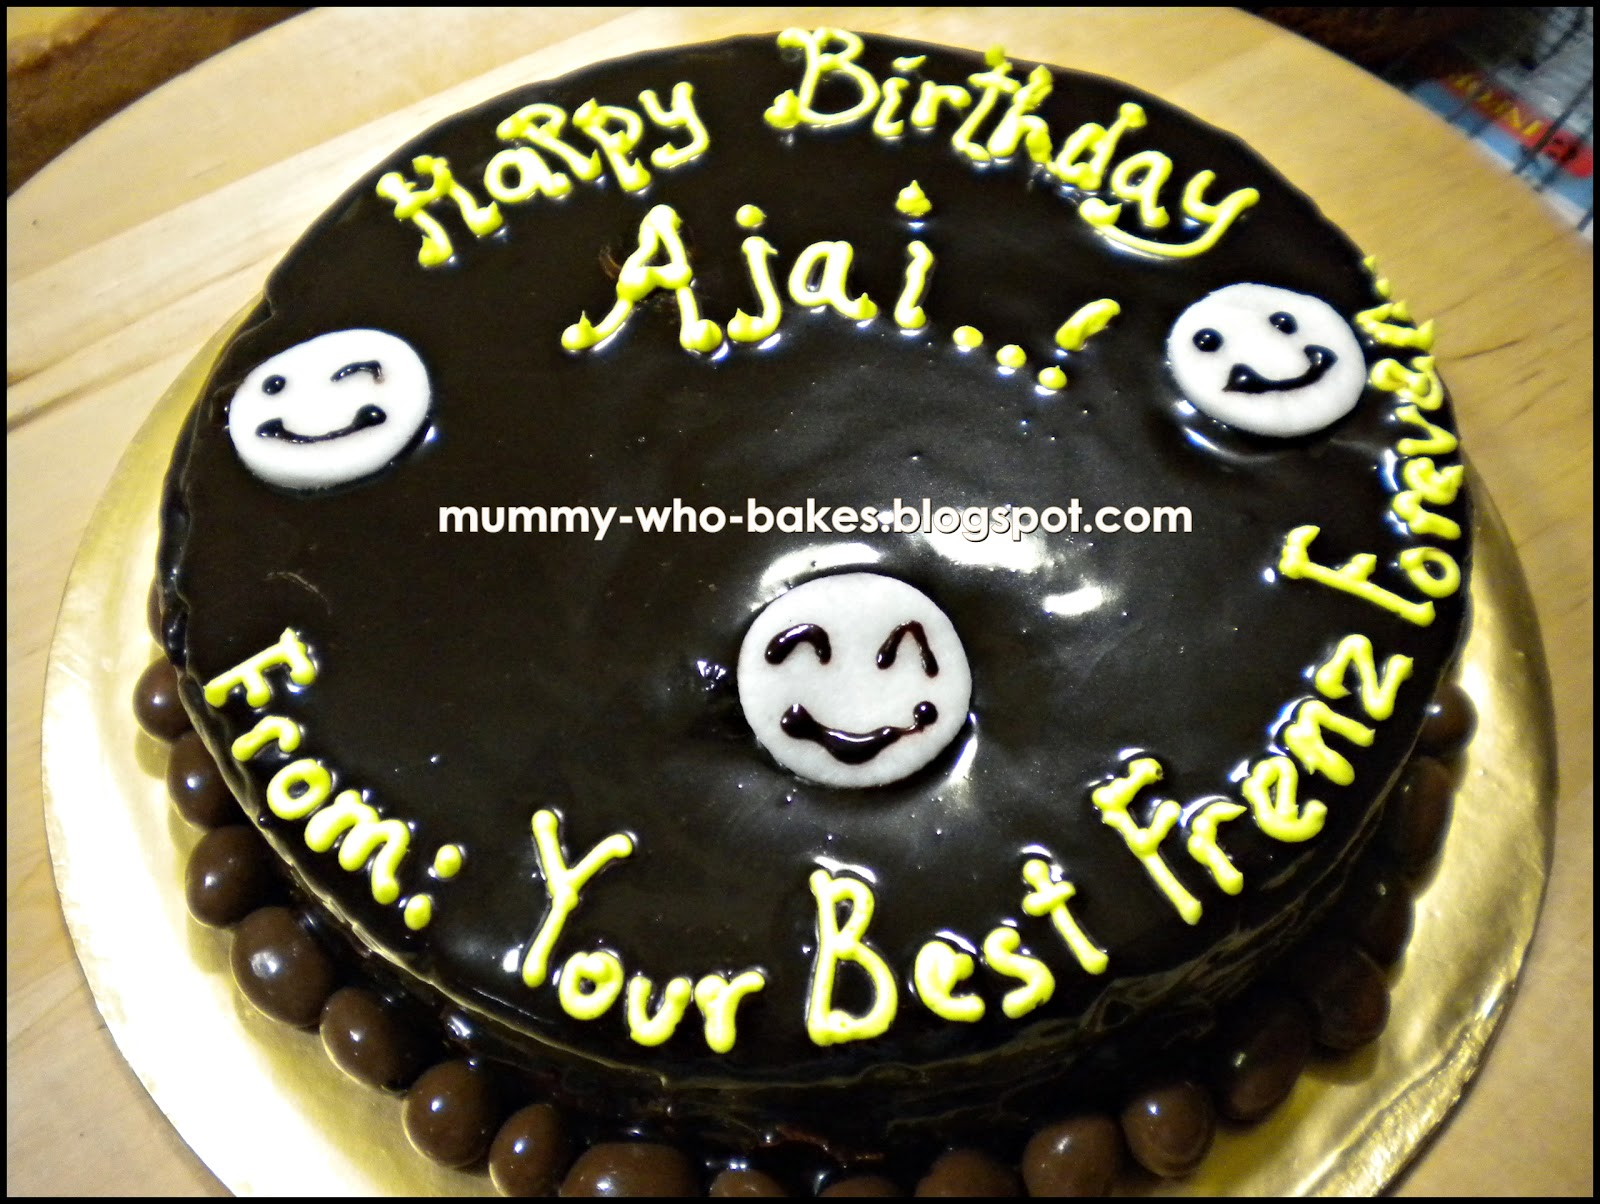 Birthday Cake Images With Name Ajay : My Little Cupcakes...: Moist Mud Chocolate Birthday Cake ...